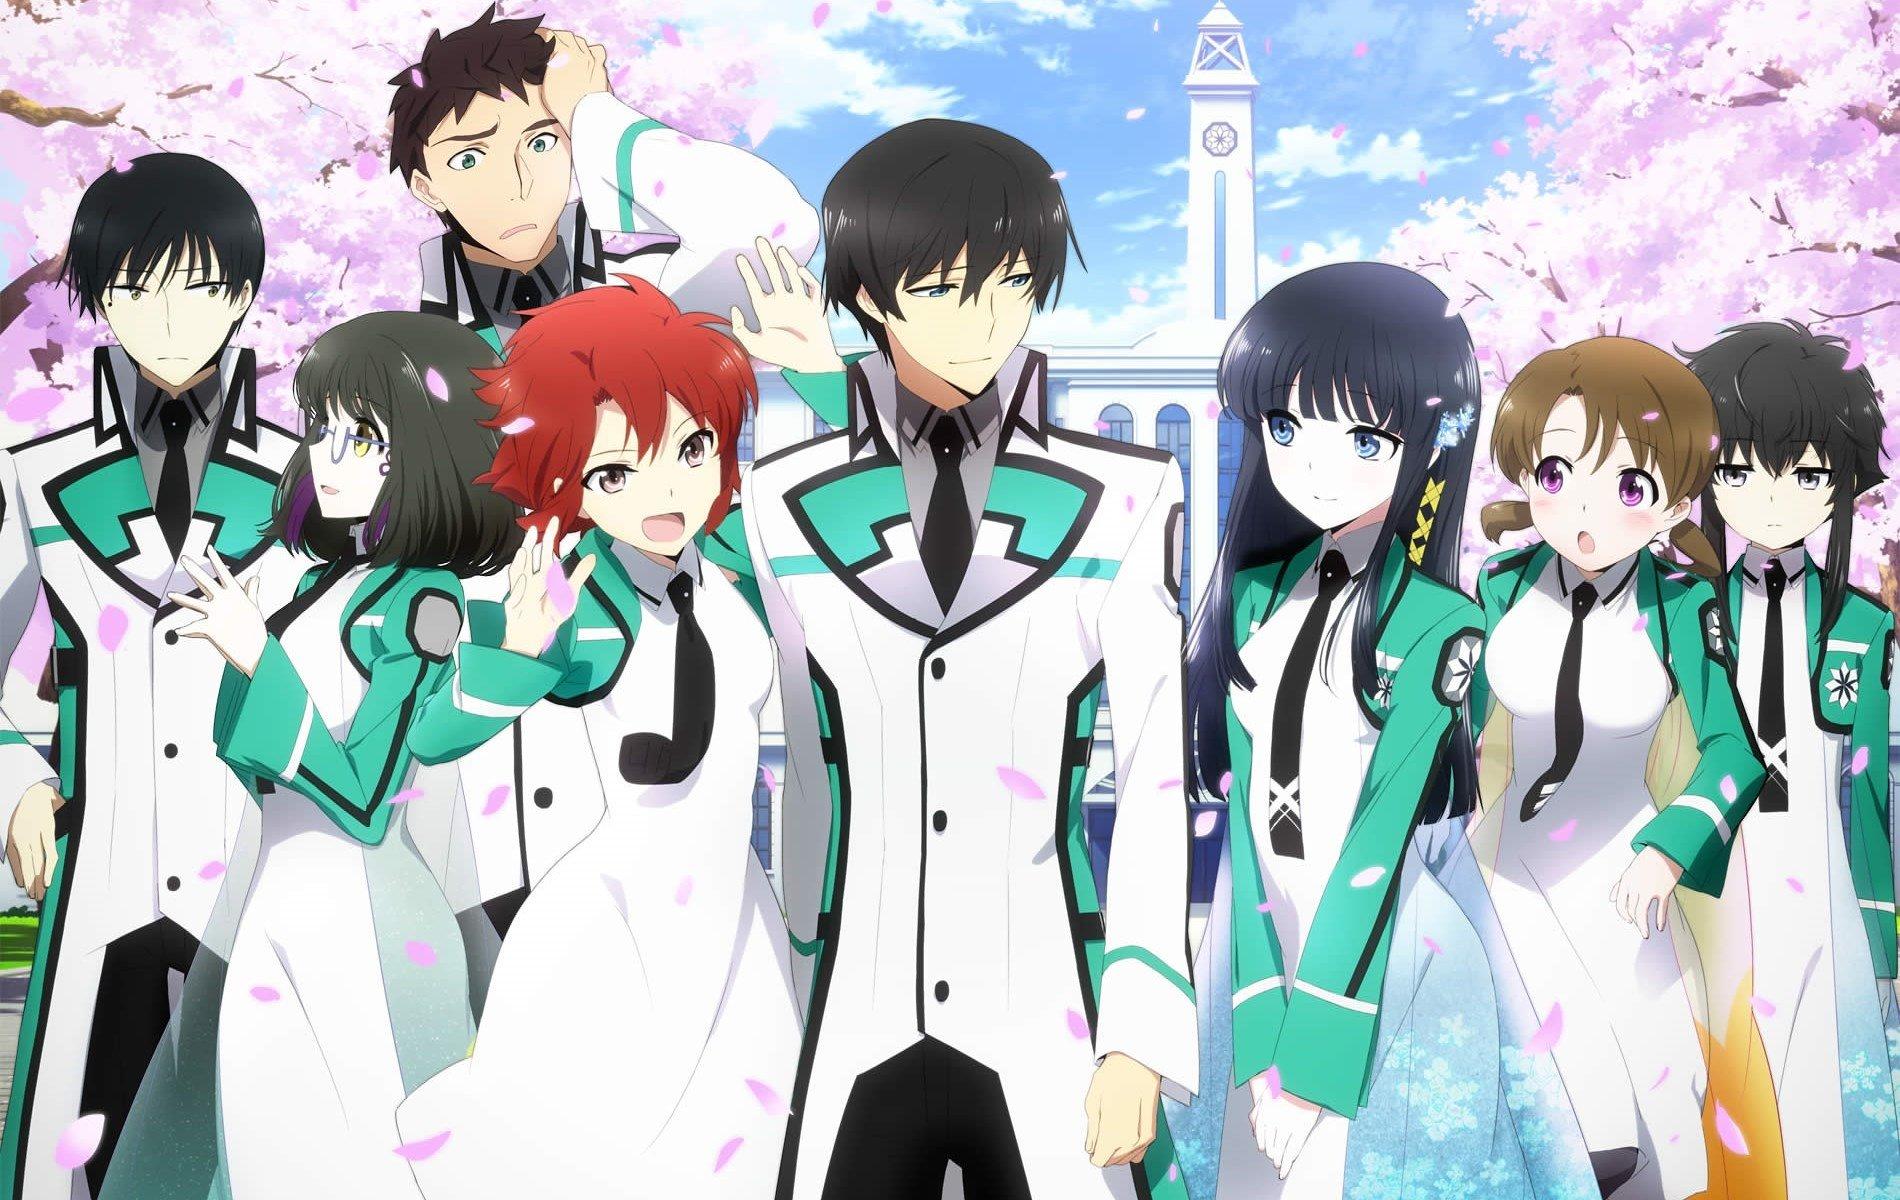 49 The Irregular At Magic High School Hd Wallpapers Background